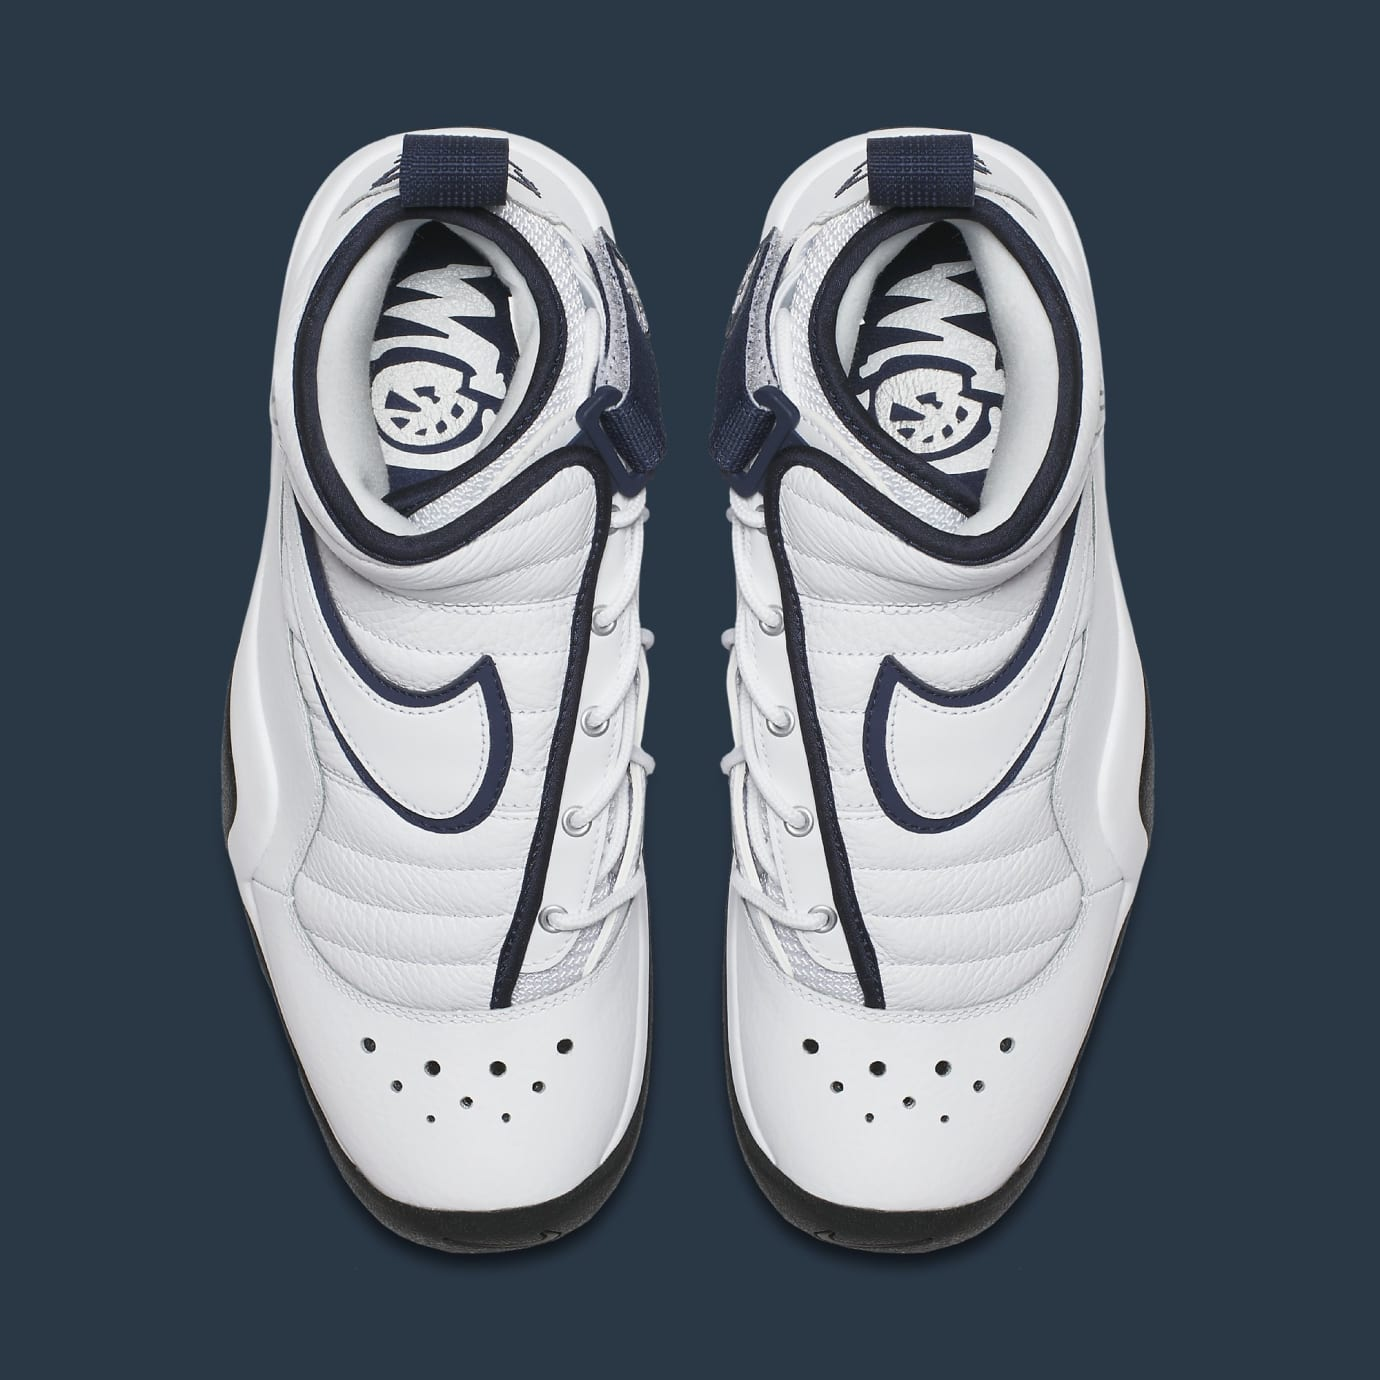 Nike Air Shake Ndestrukt 880869-102 White Navy Top